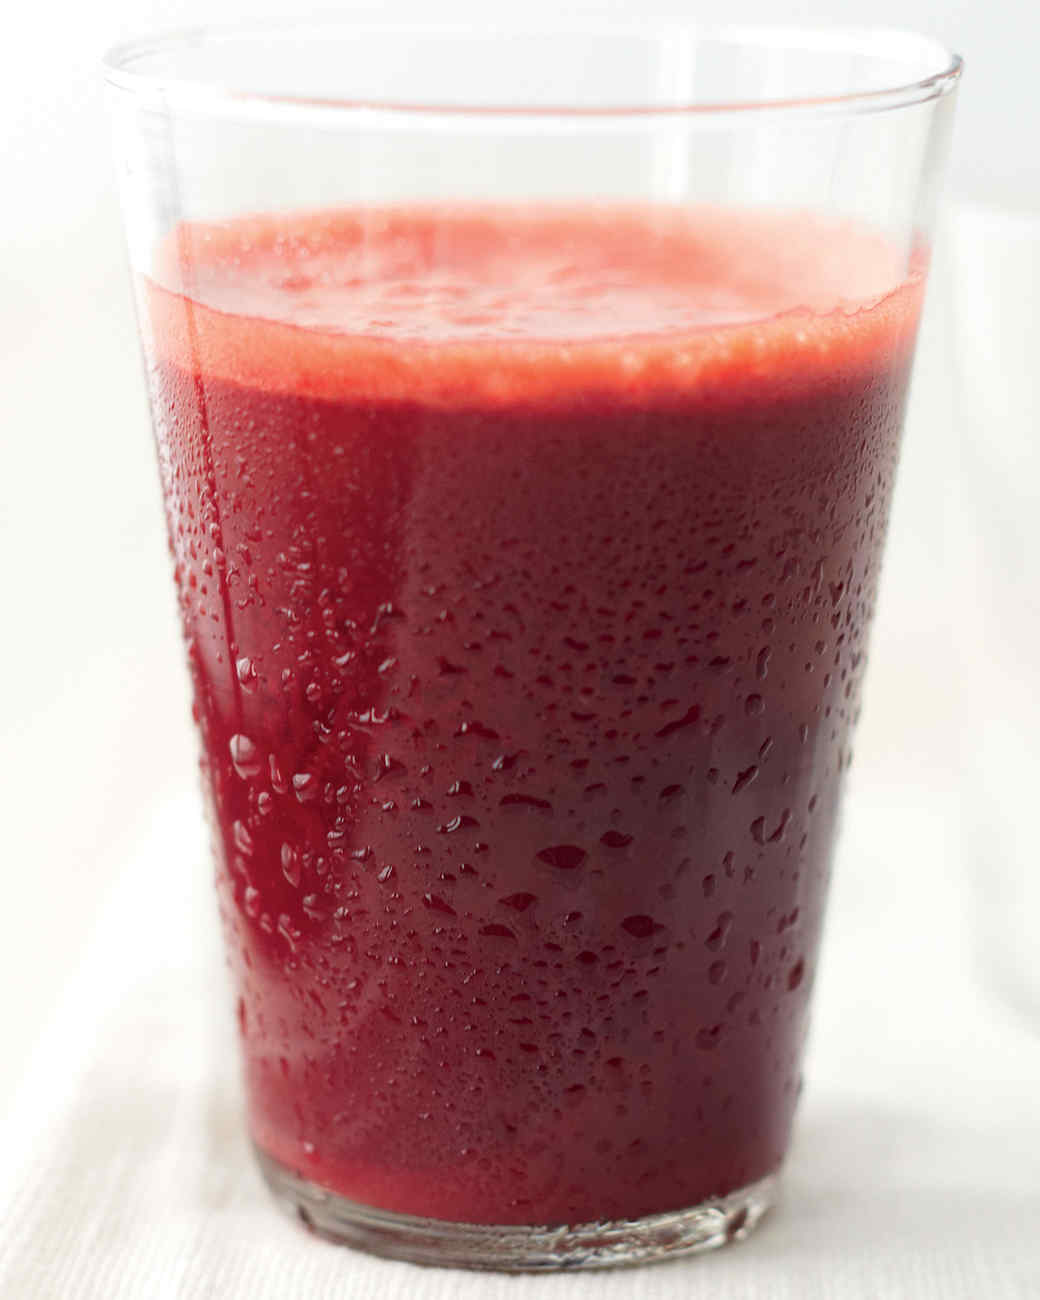 beet-apple-mint-juice-mbd108052.jpg